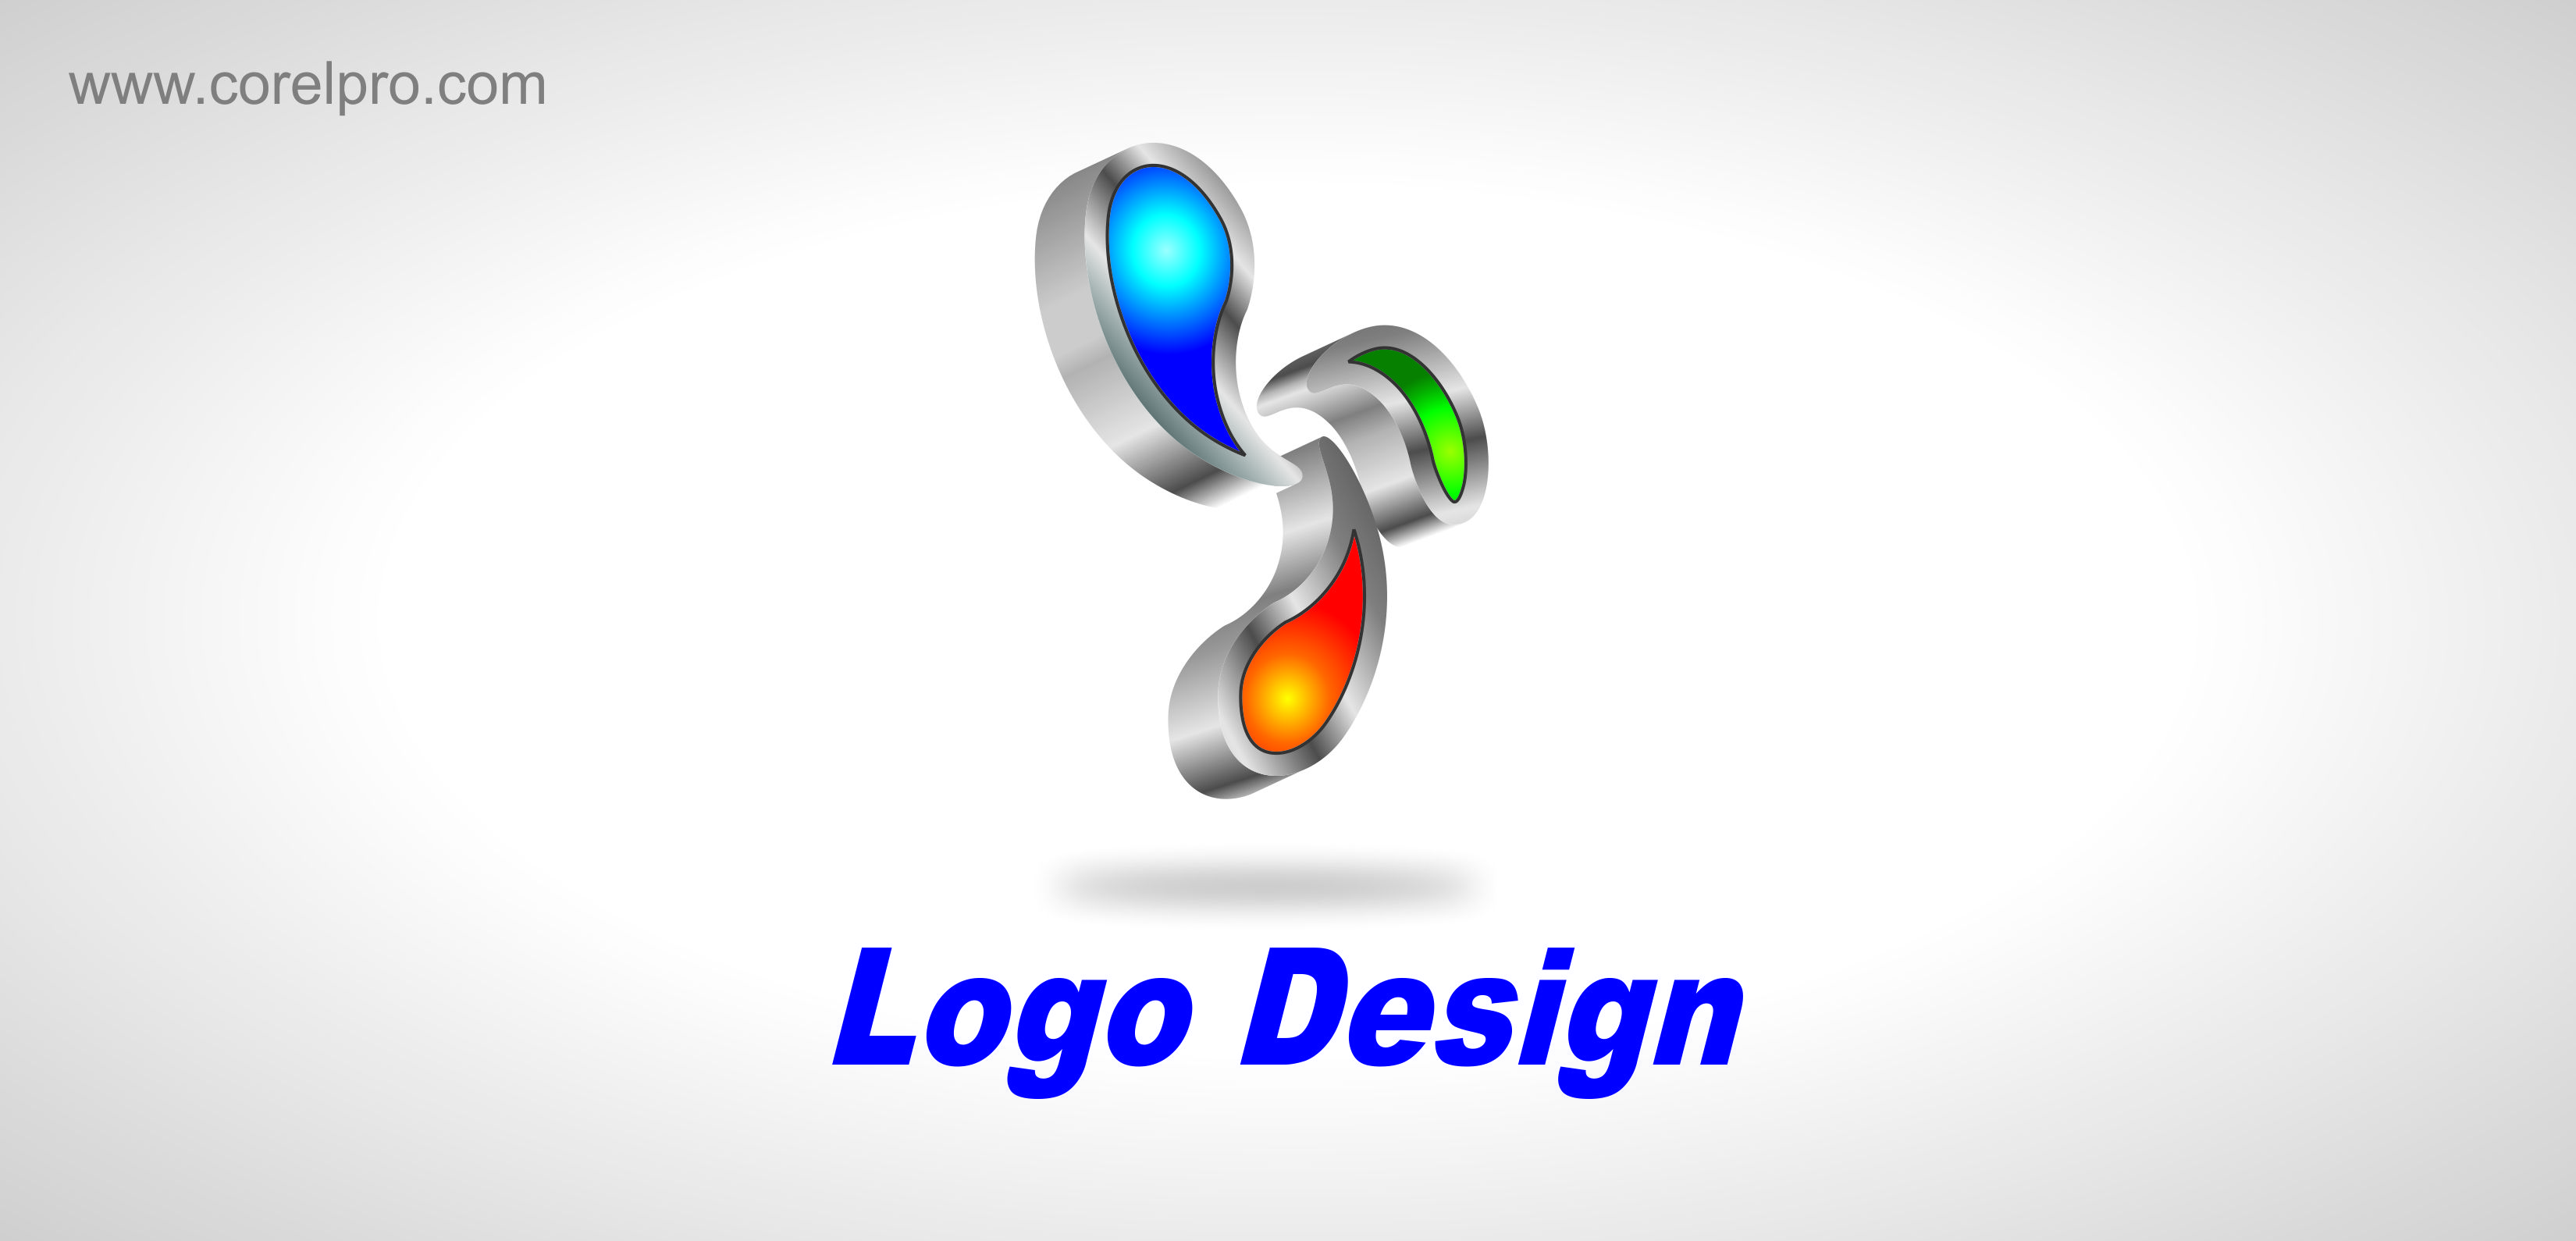 Logo Design Ideas best 25 logo design ideas on pinterest logo inspiration logos and logo desing Best Logo Design Ideas 39 In Coreldraw Tutorial With Free Source File Download Logo Design Ideas Video Tutorials For How To Make Logo Elements